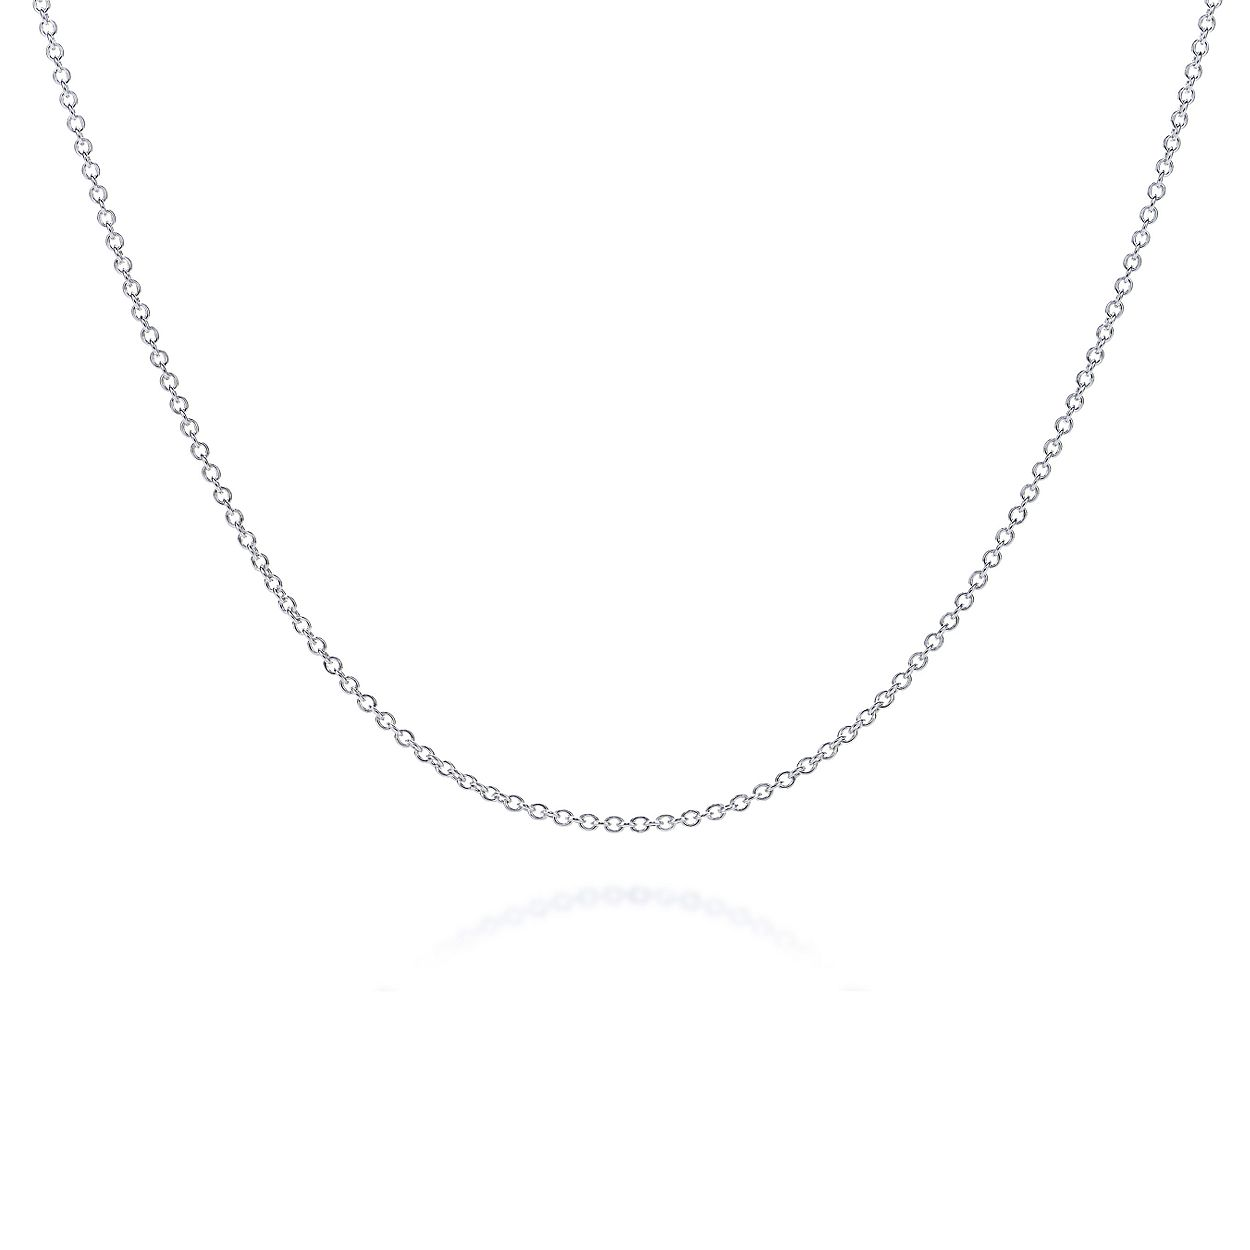 ead436c4be Shop Sterling Silver Chain Necklace | Tiffany & Co.